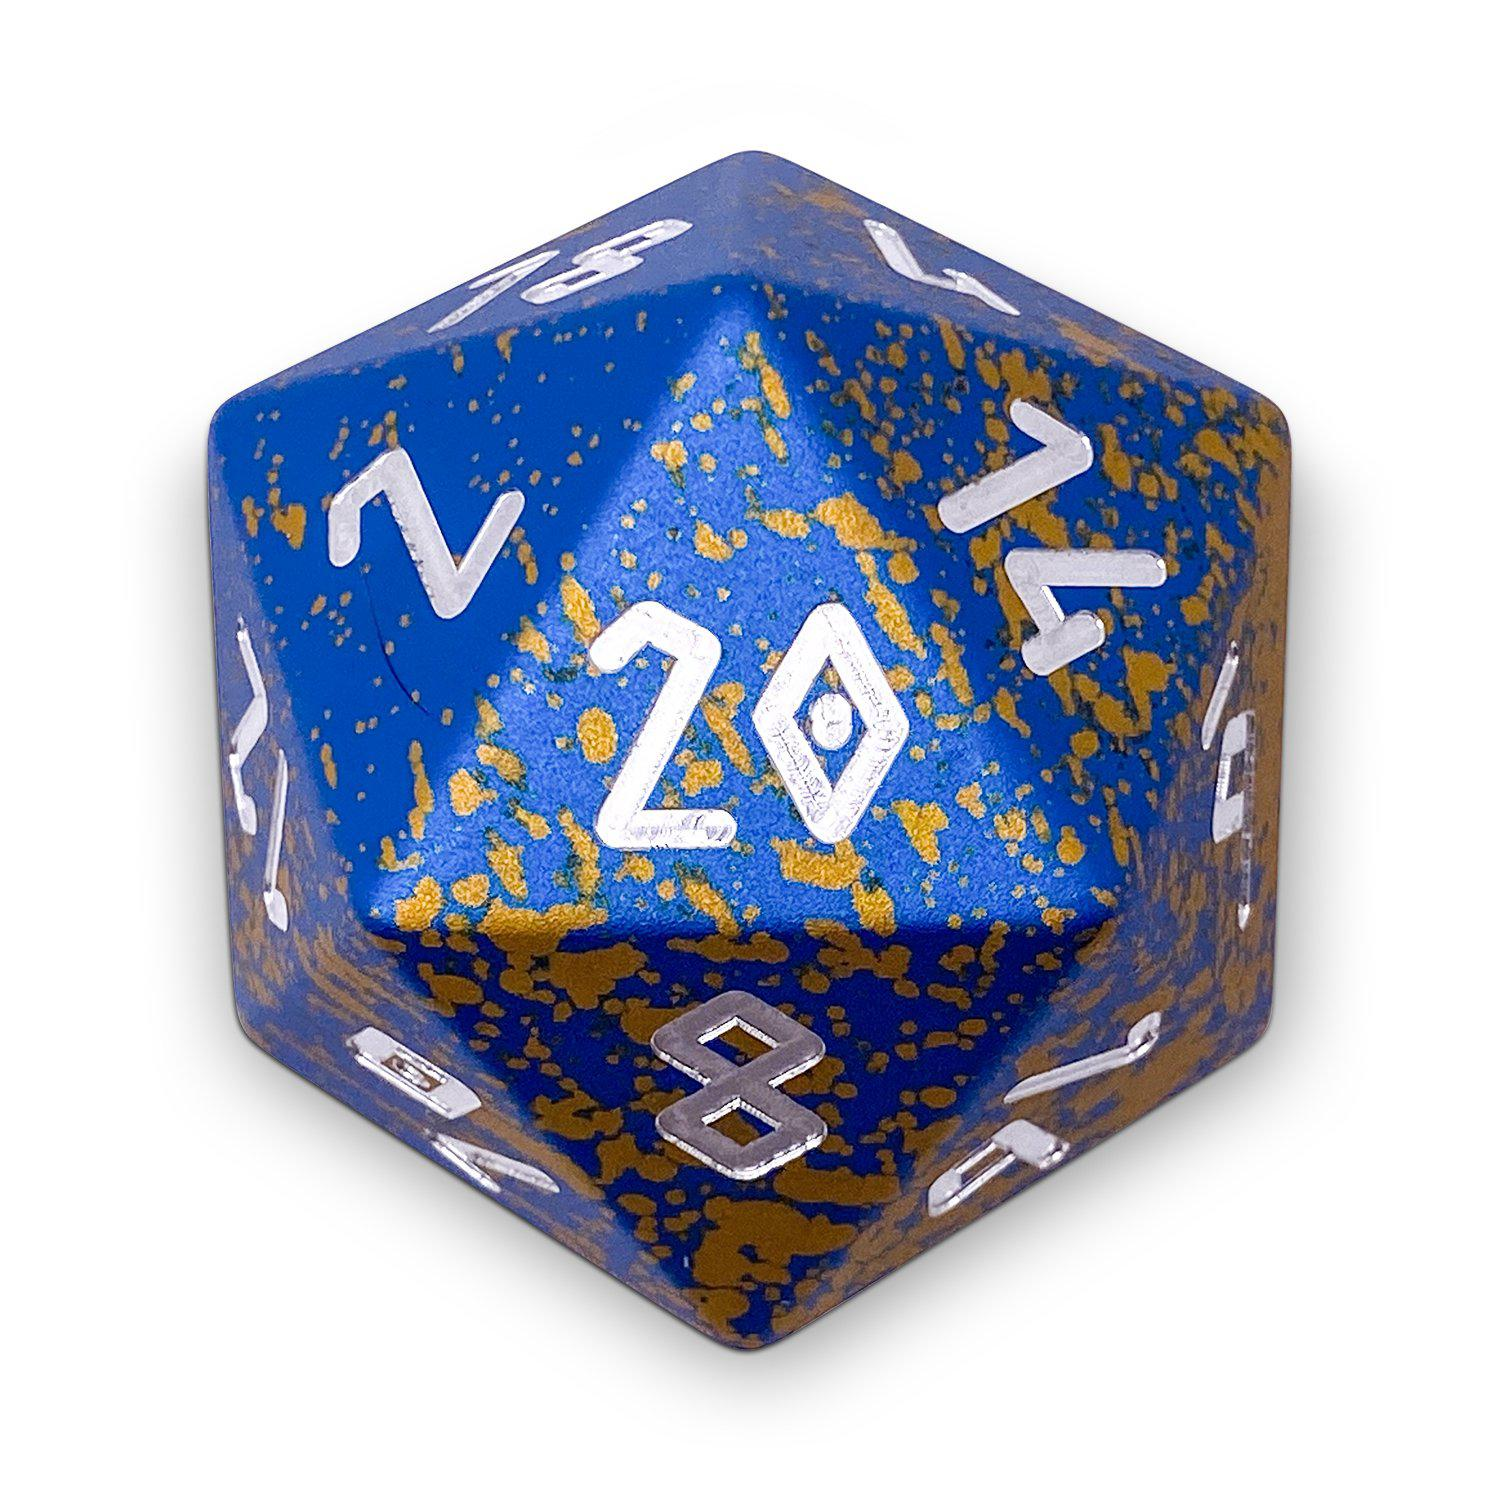 The Mimic - Wondrous Boulder® 55mm D20 6063 Aircraft Grade Aluminum Metal Die